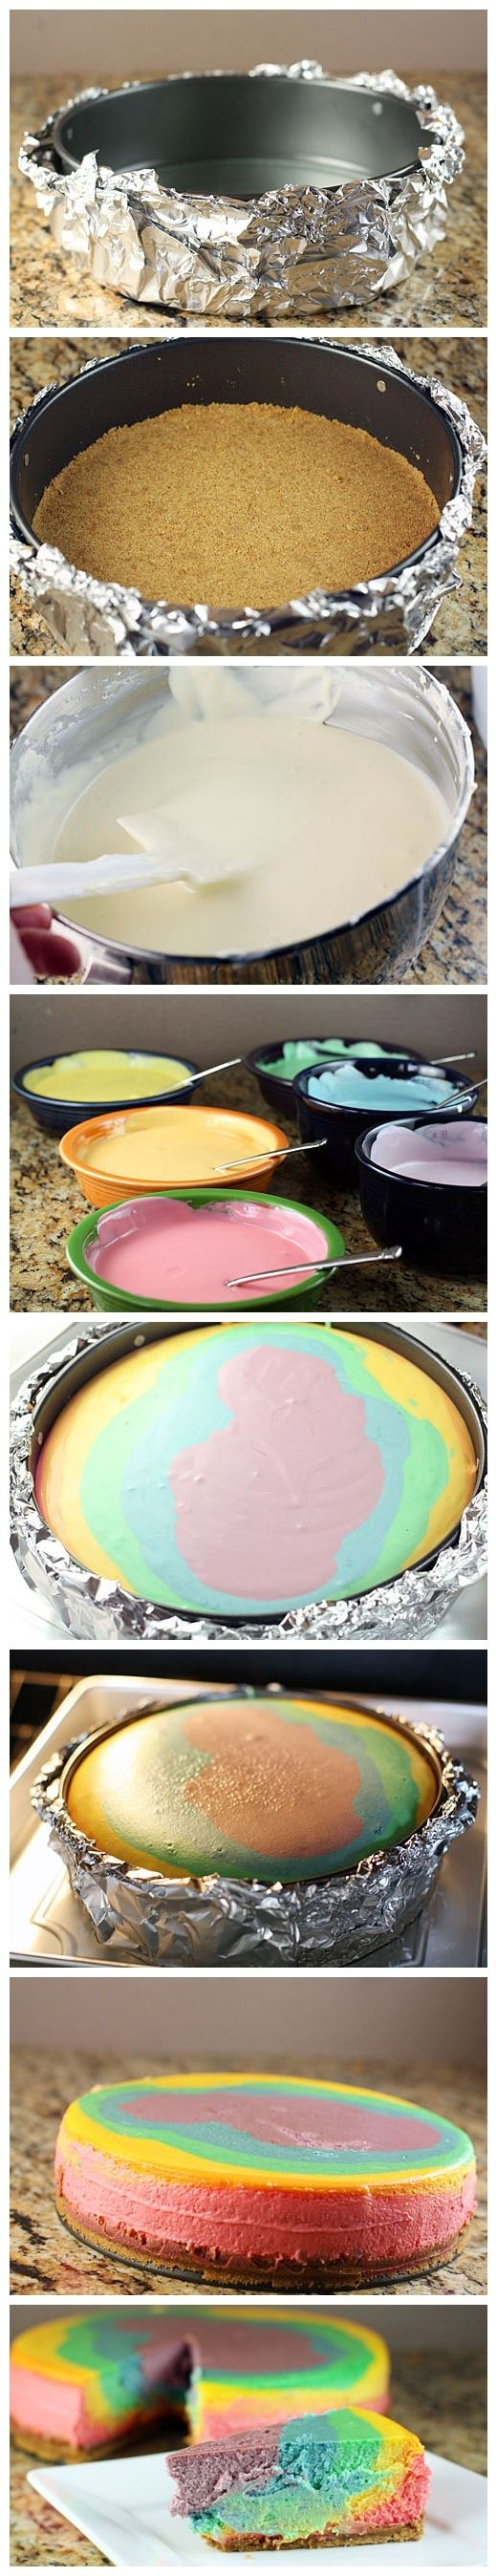 Rainbow Cheesecake Recipe - (tablespoon)